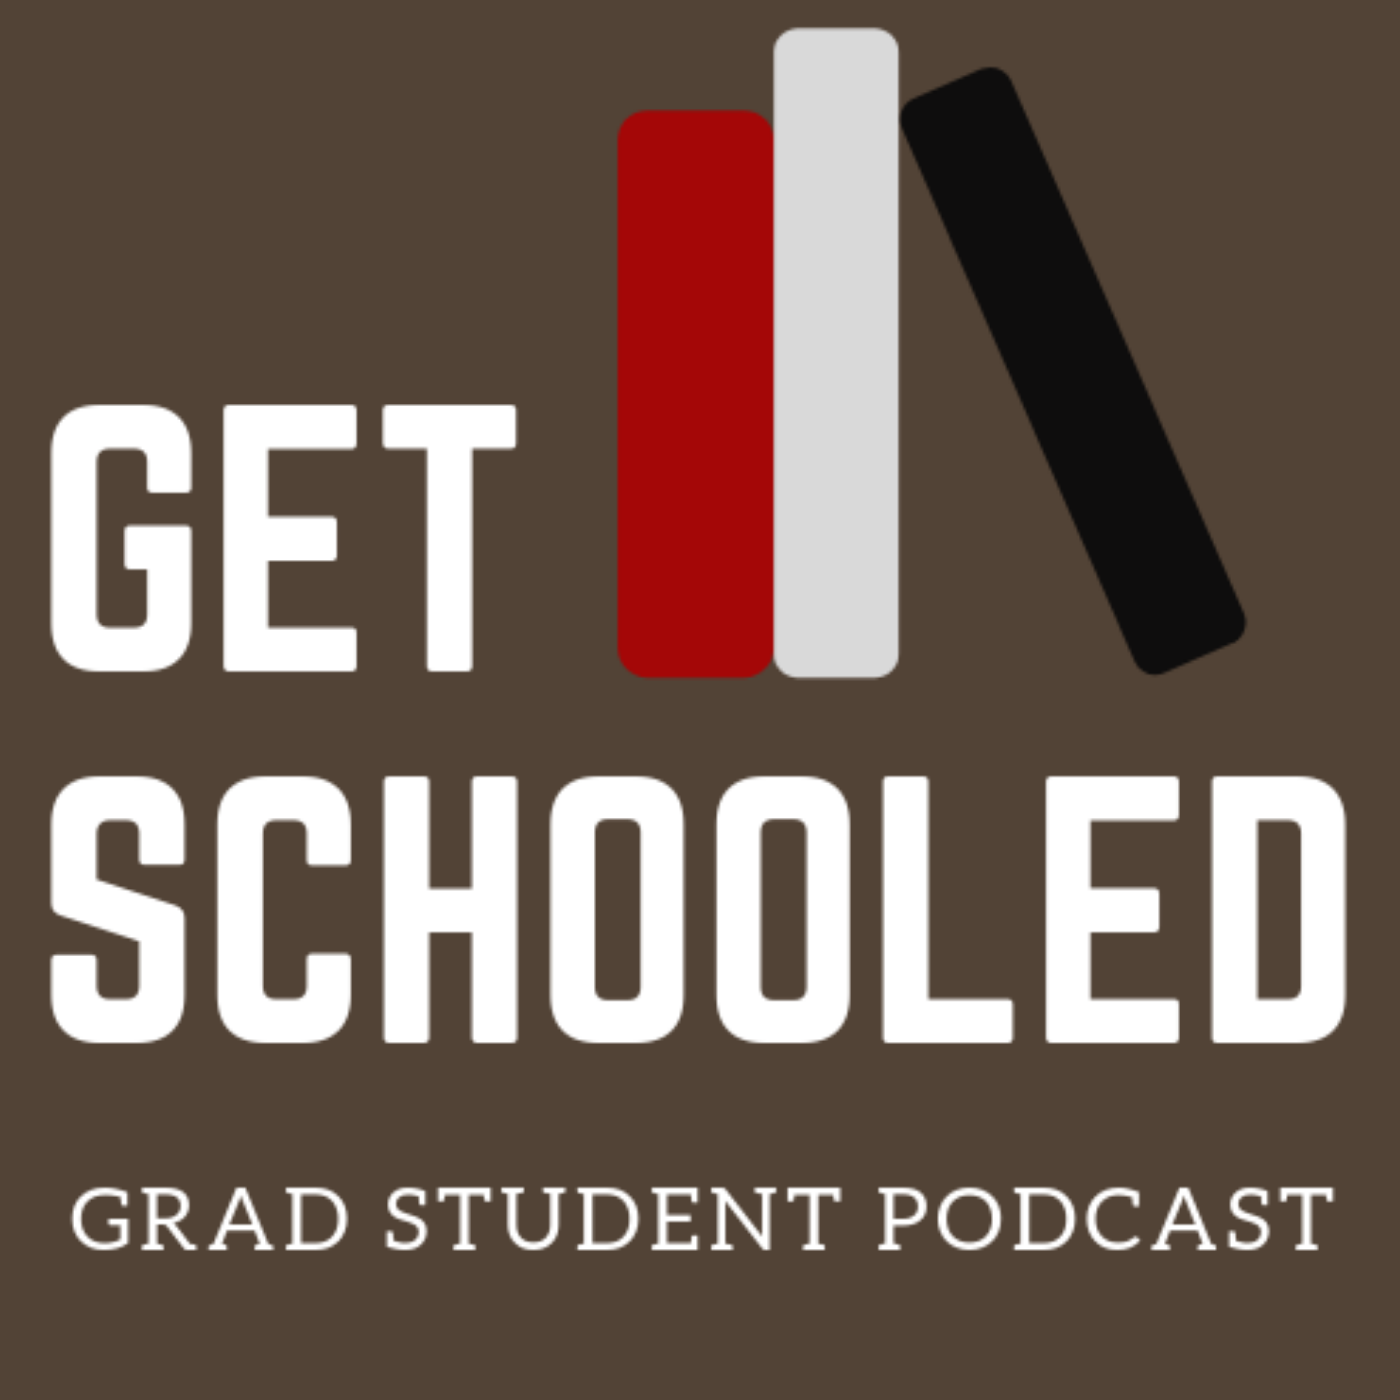 The mungetschooledpodcast's Podcast